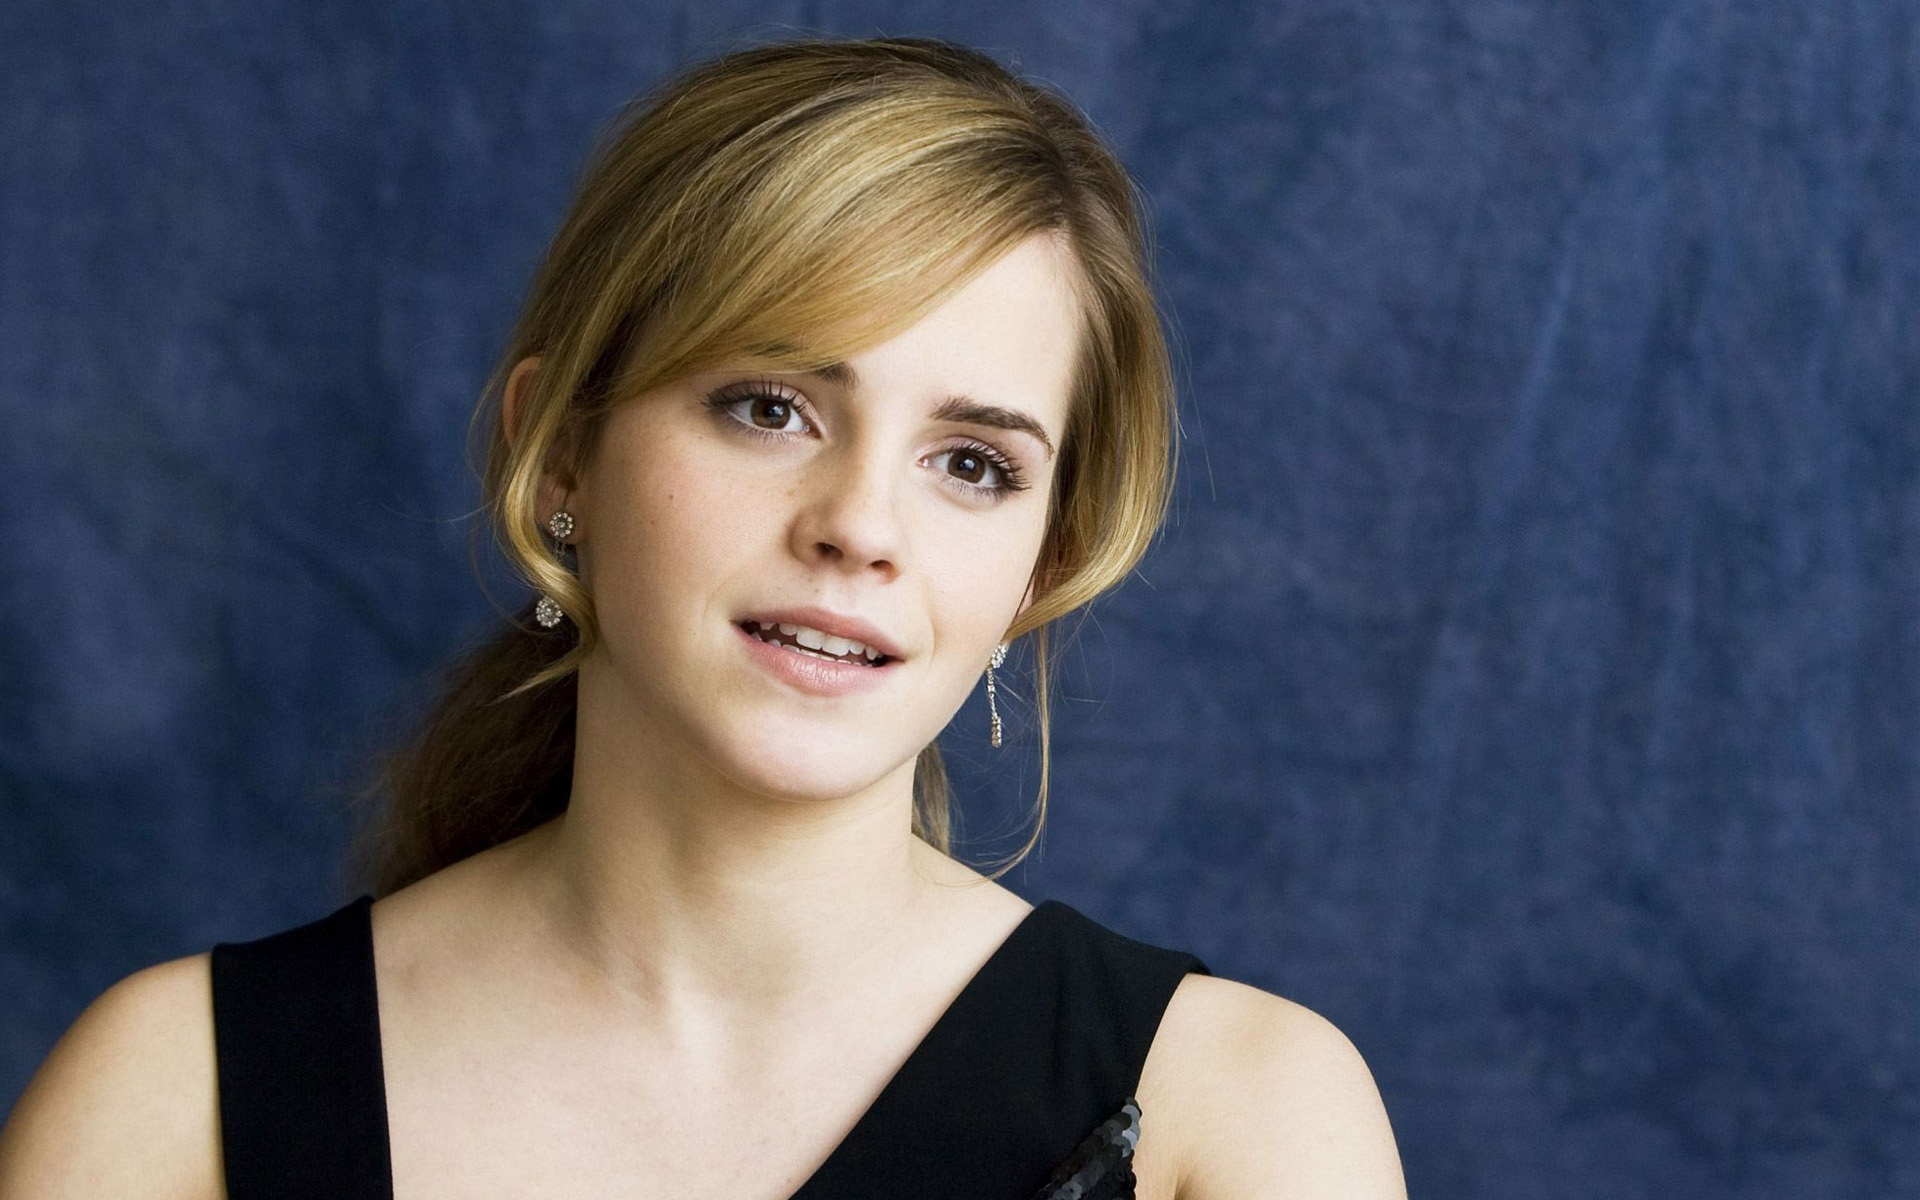 emma watson wallpapers hd A22